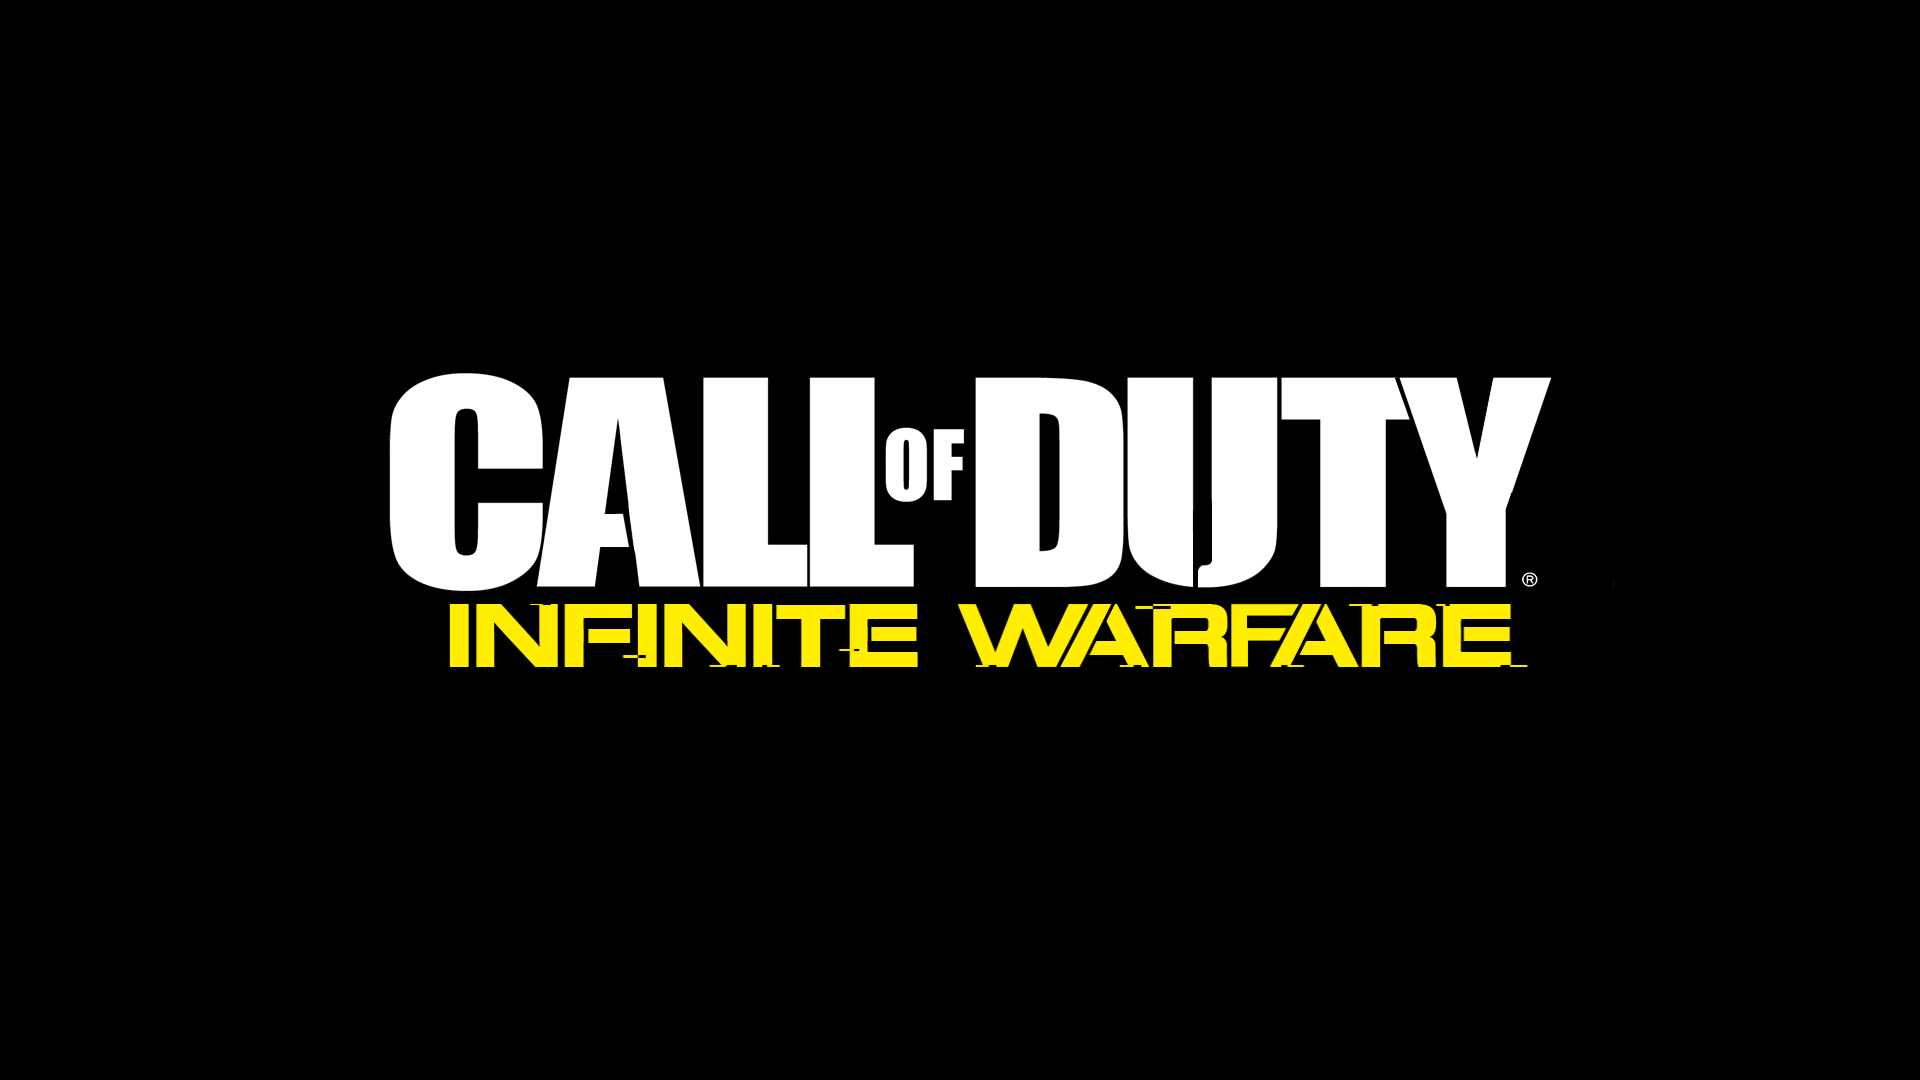 Call Of Duty Infinite Warfare Wallpapers Pictures Images